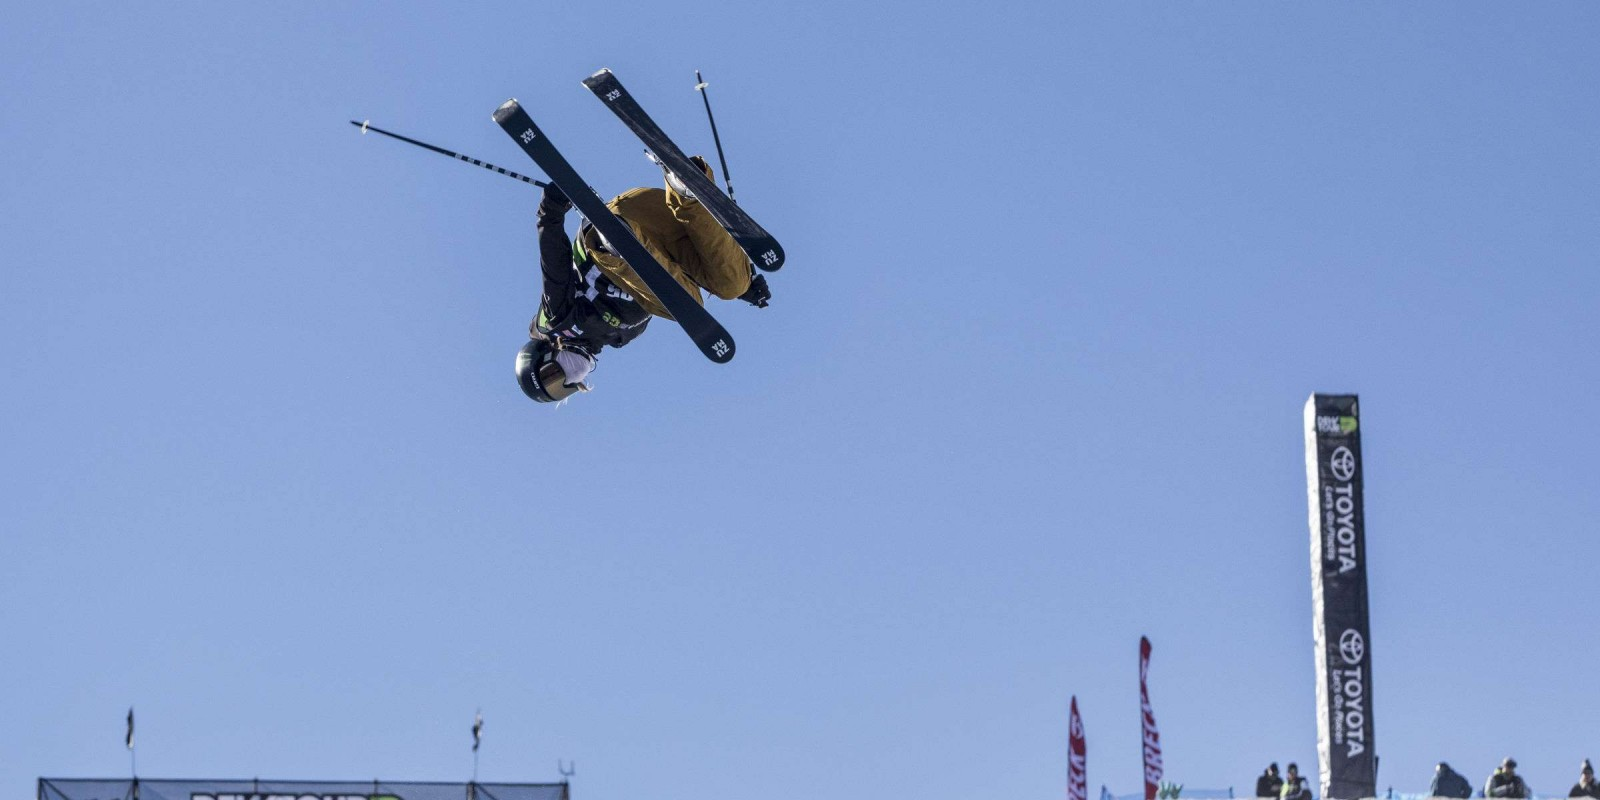 Friday images from Ski Pipe contest at Dew Tour 2017